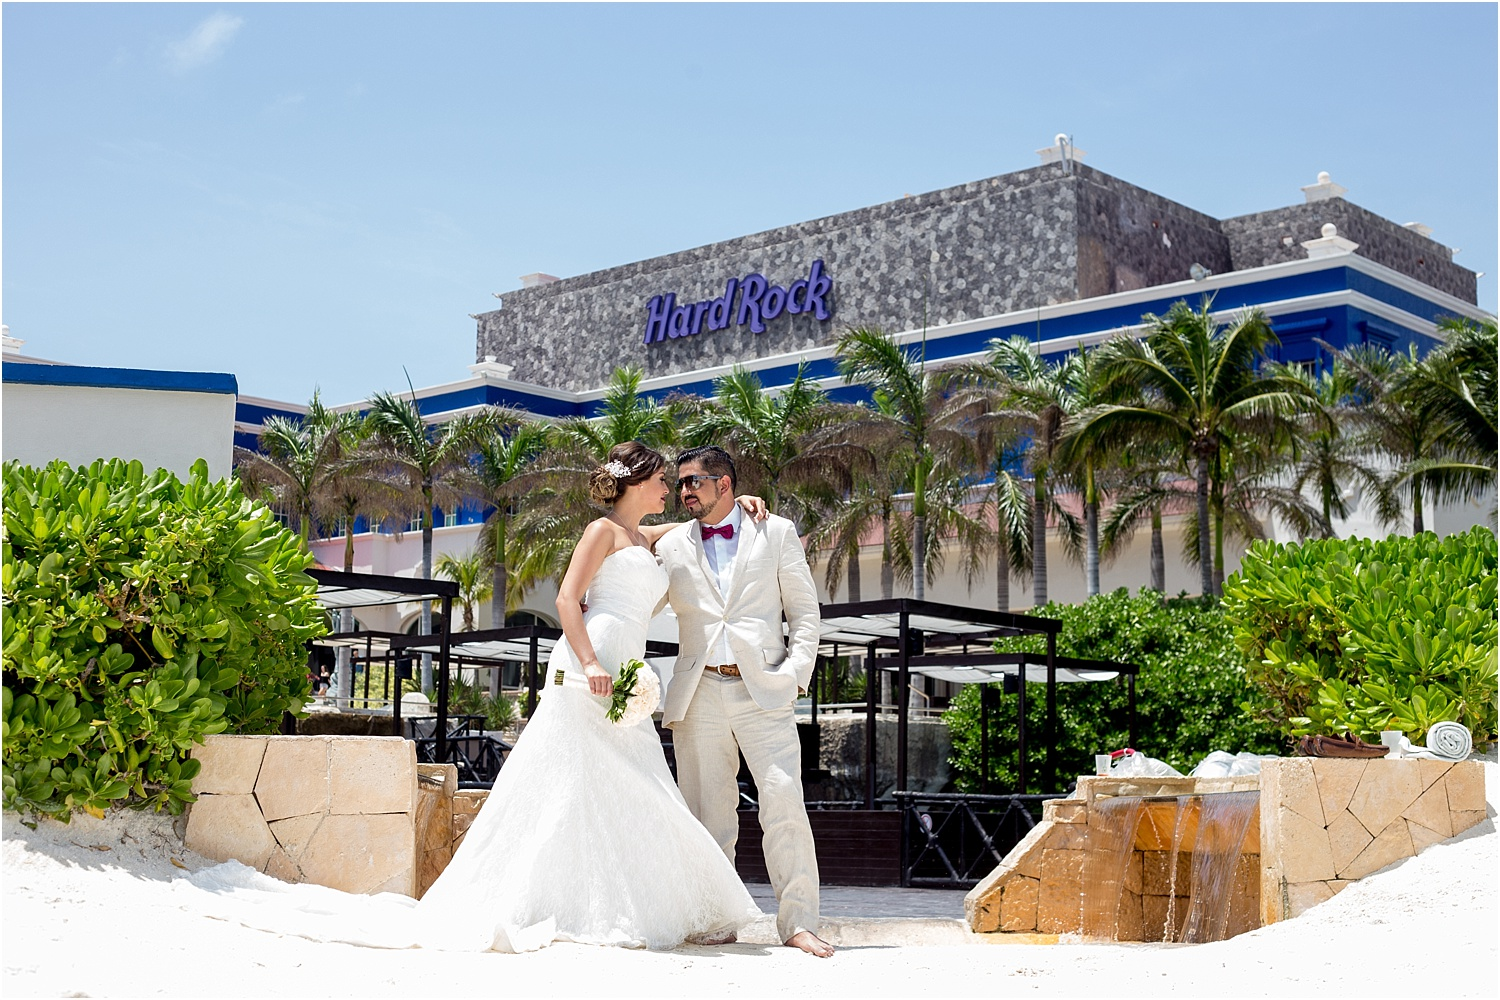 couple by Hard Rock cafe - Tips for Better Bridal Portraits